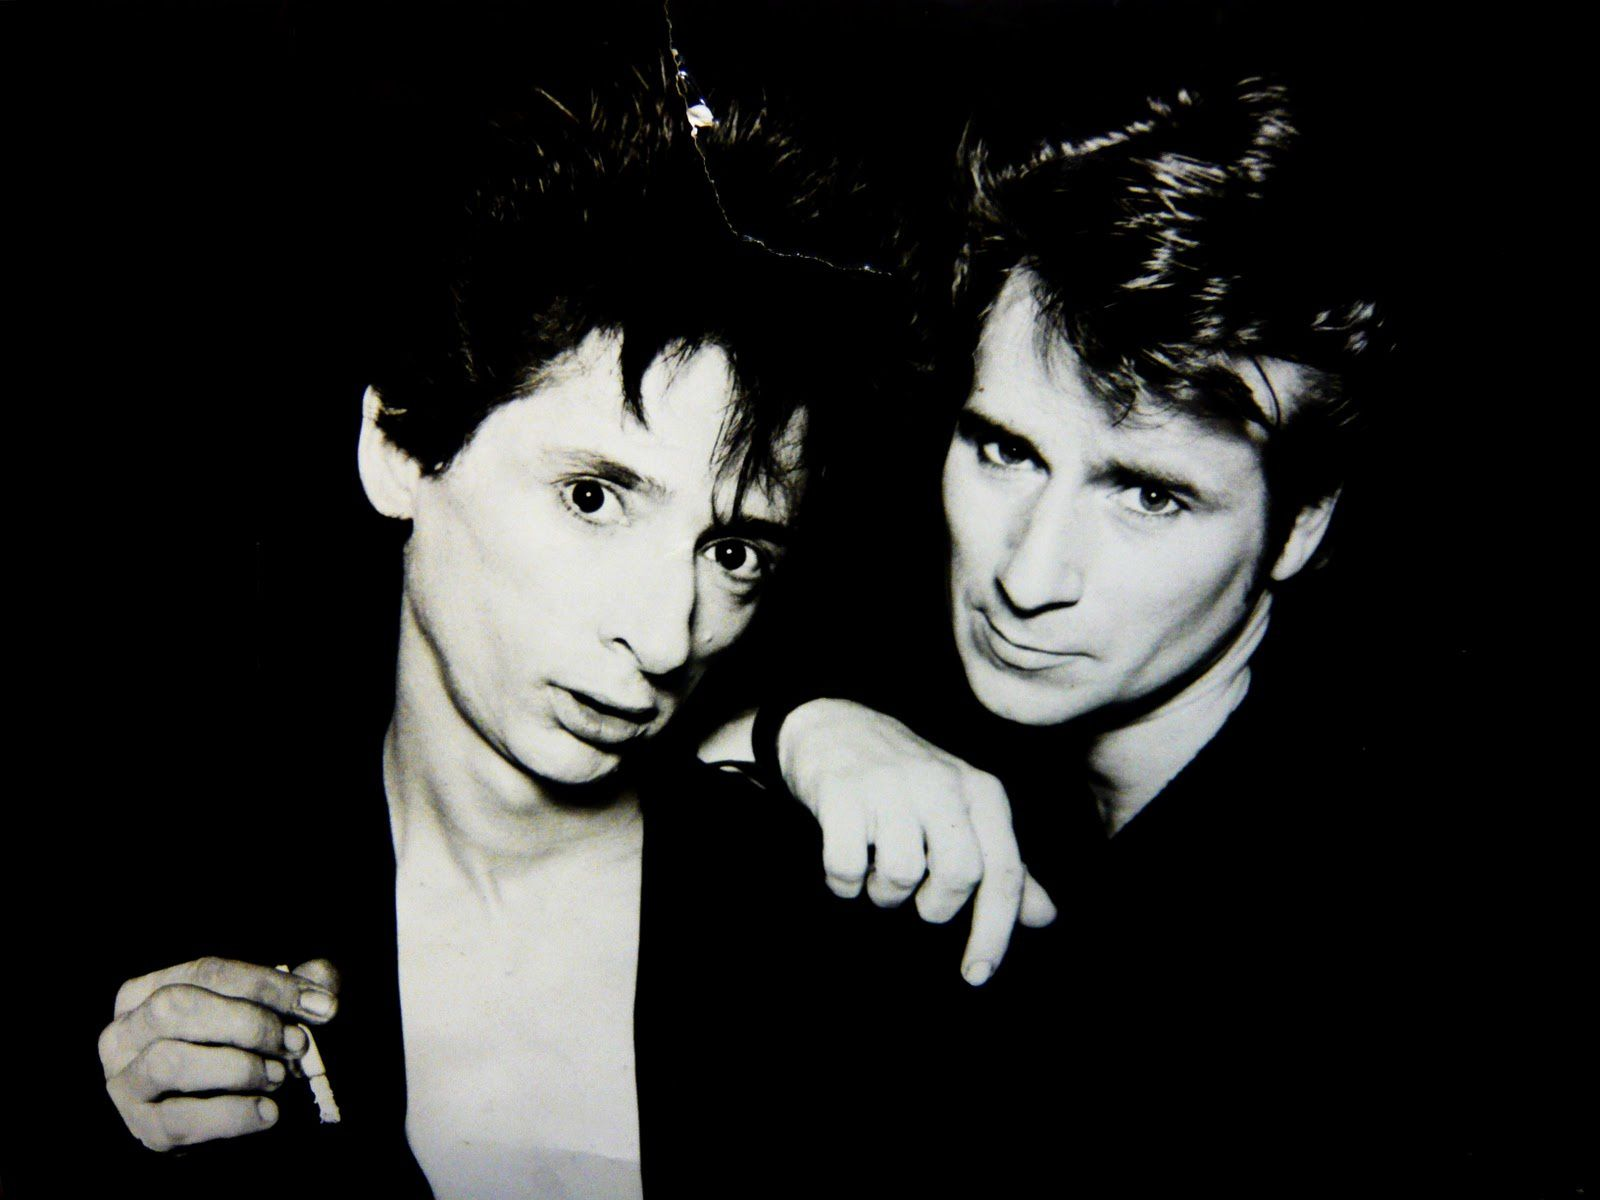 Johnny Thunders & Jerry Nolan (1985)